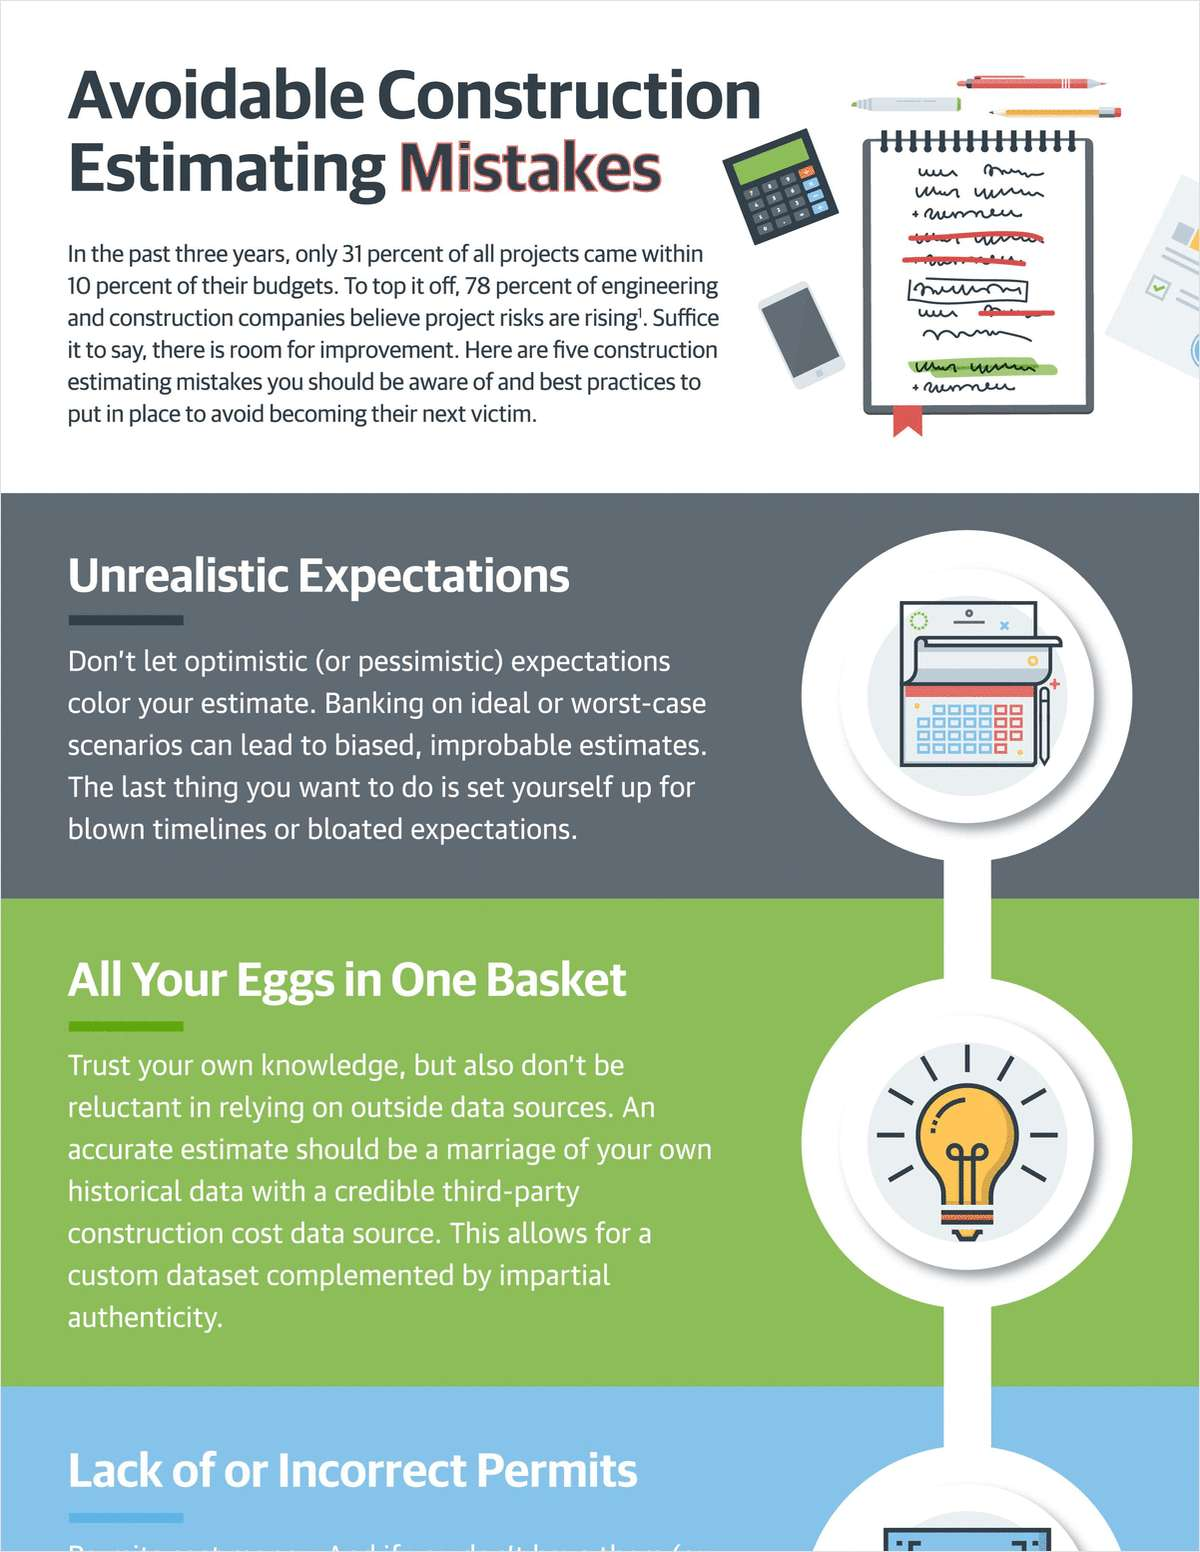 Avoidable Construction Estimating Mistakes